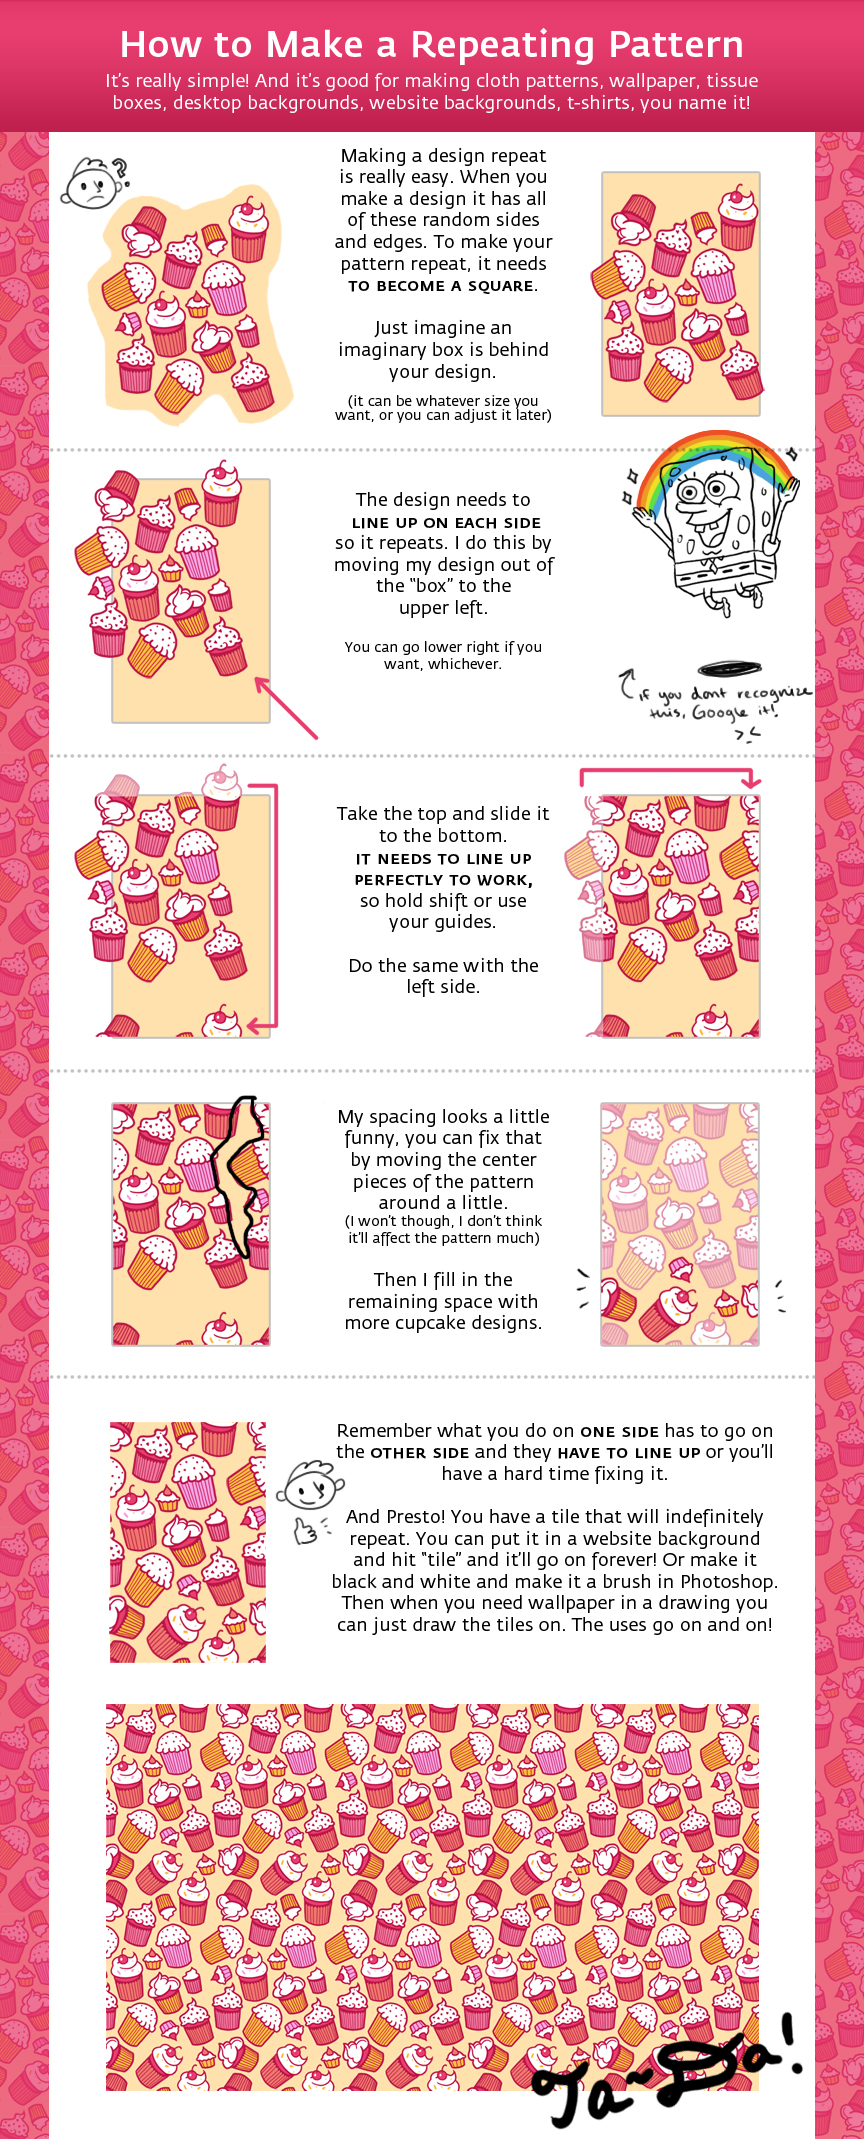 Repeating Pattern Tutorial By Cpresti Repeating Pattern Tutorial By Cpresti